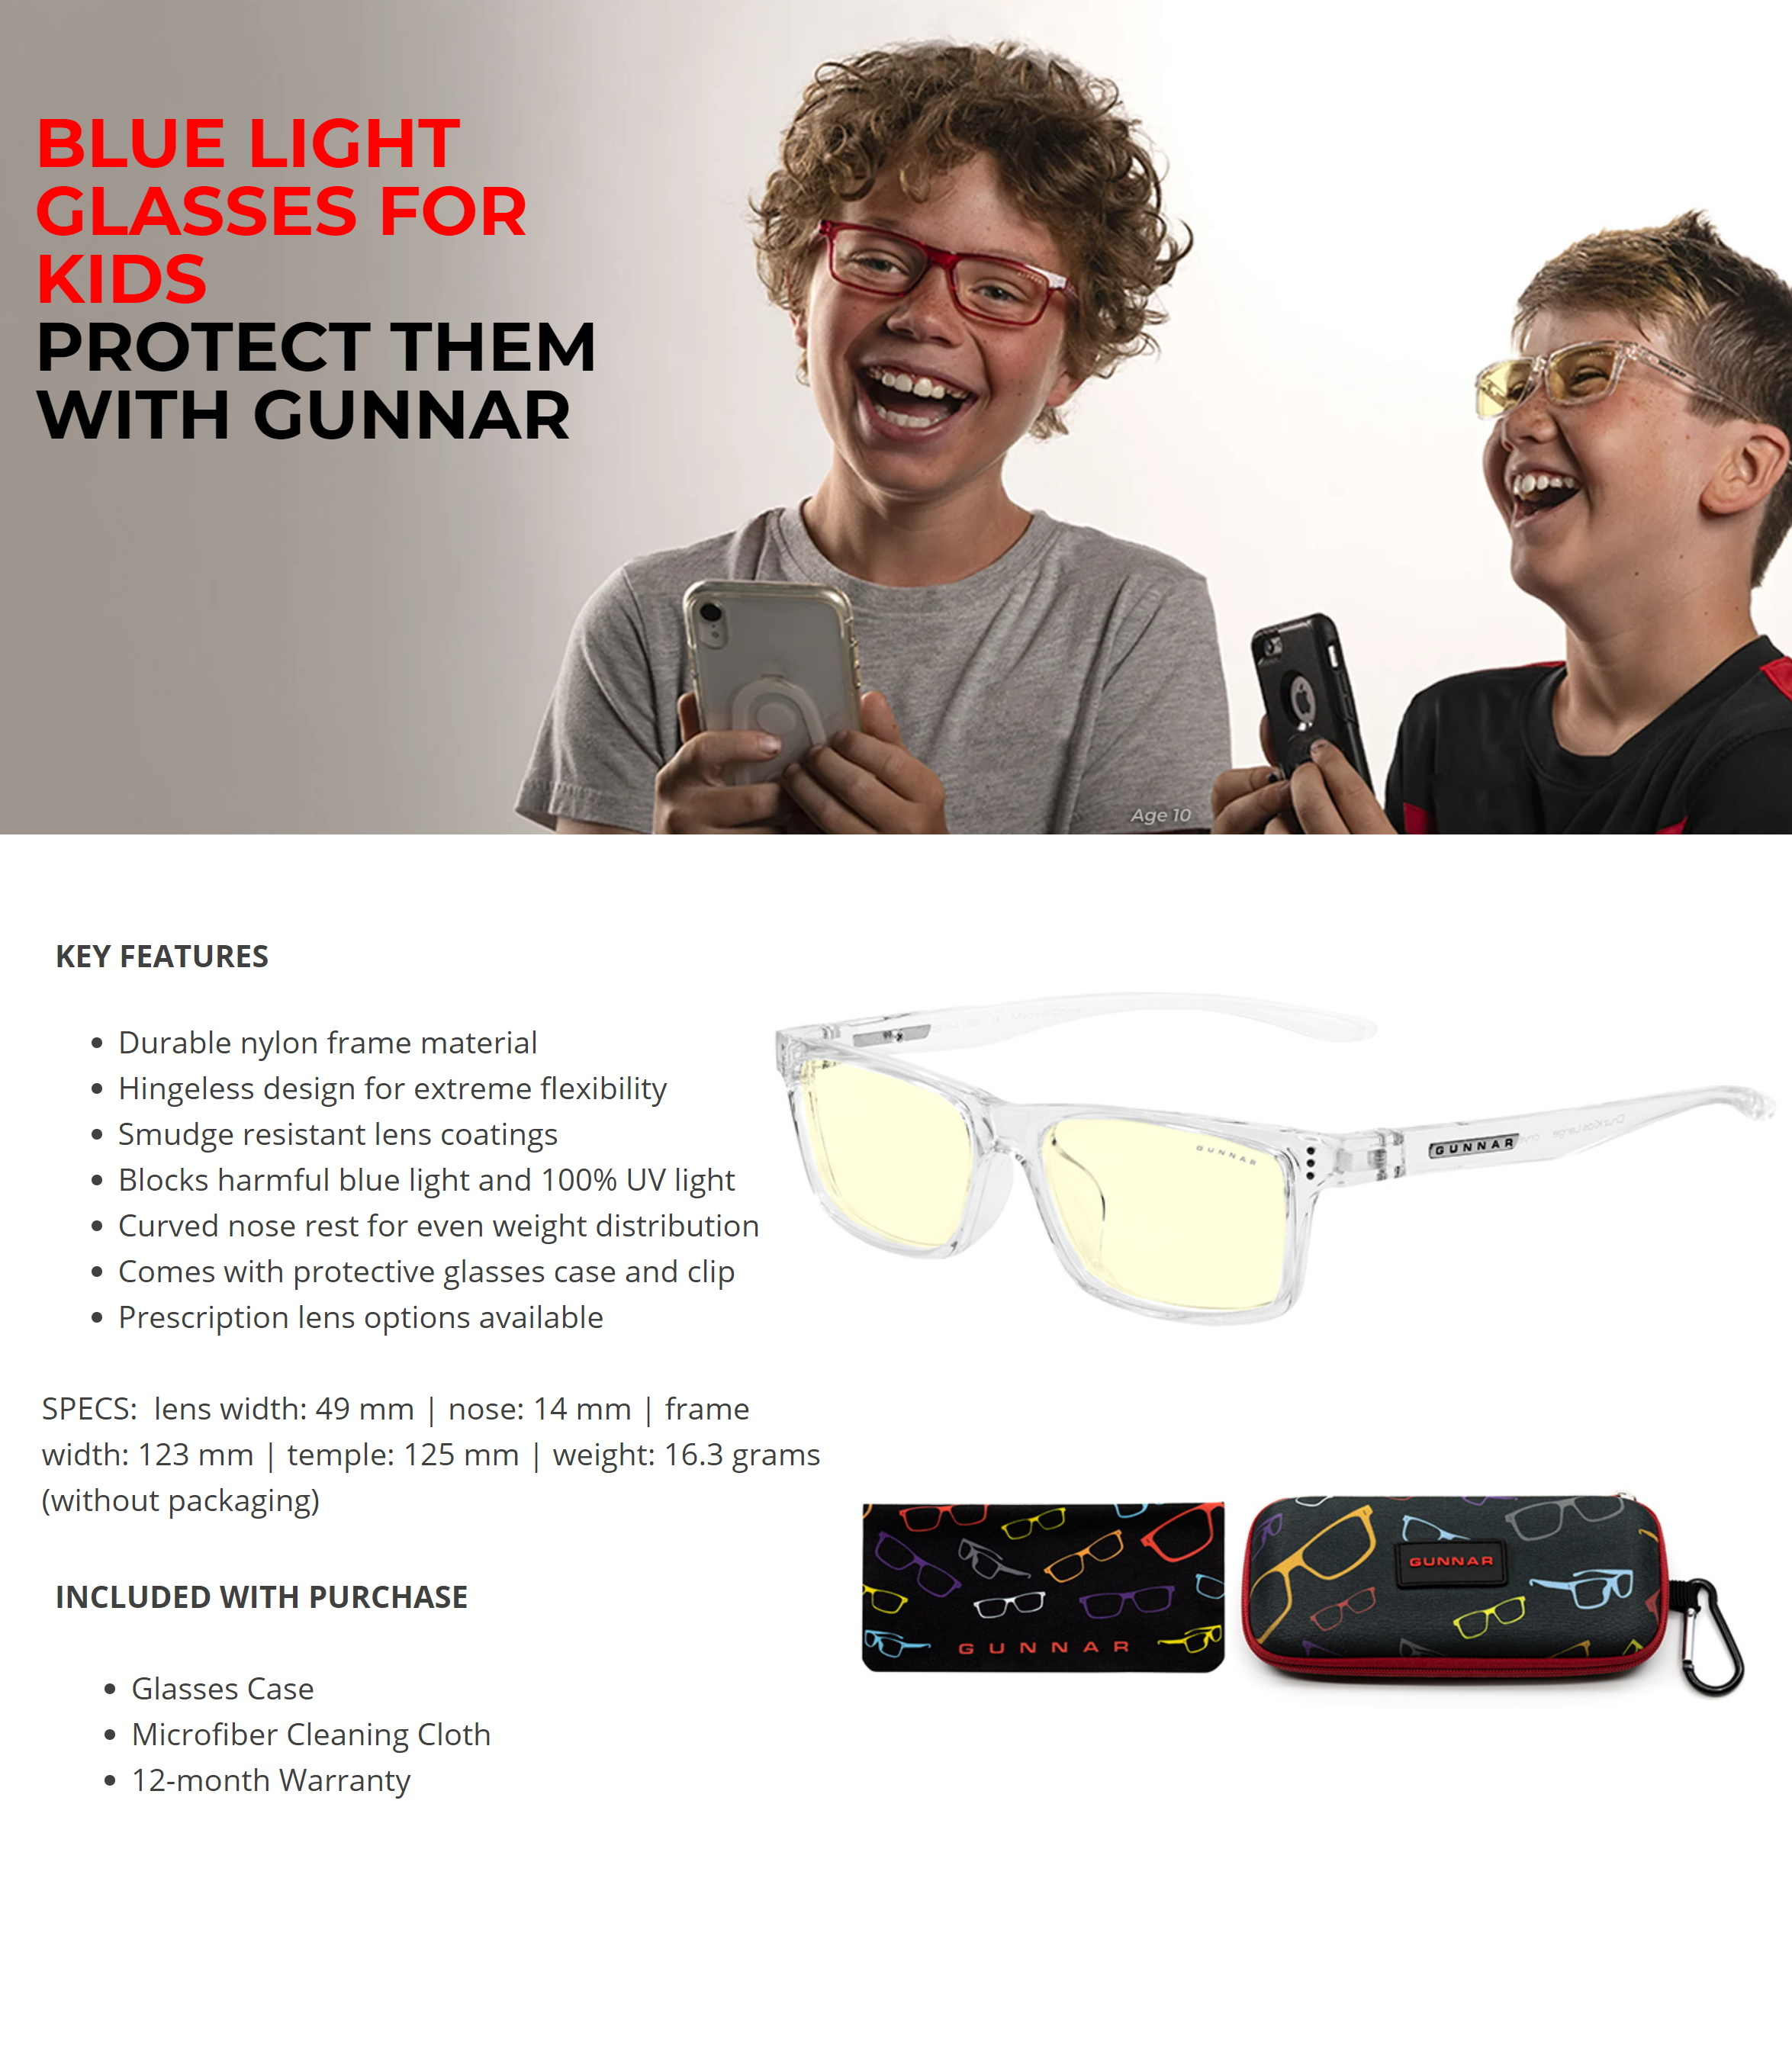 A large marketing image providing additional information about the product Gunnar Cruz Kids Amber Crystal Indoor Digital Eyewear Large - Additional alt info not provided